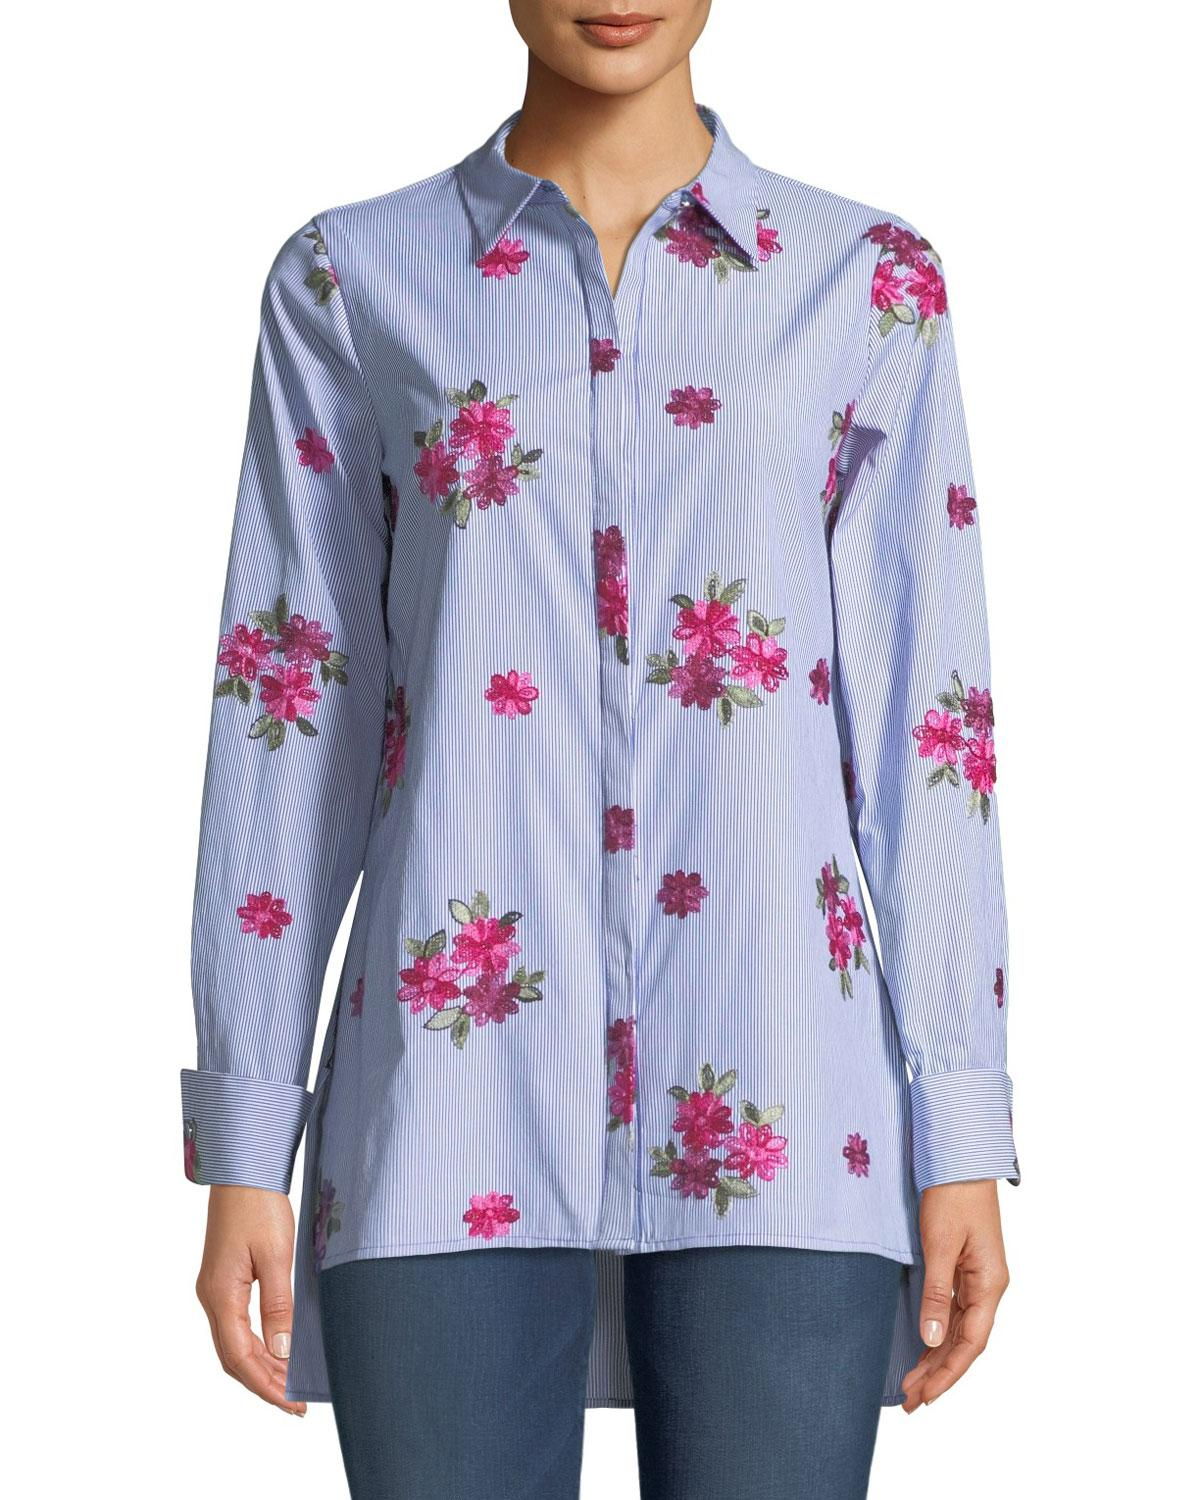 Buy Cheap Original Floral-Embroidered High-Low Button Front Tunic Neiman Marcus Cheap Discount Sale Clearance Ebay Sale Pay With Visa Discount Browse yggxJPhQW